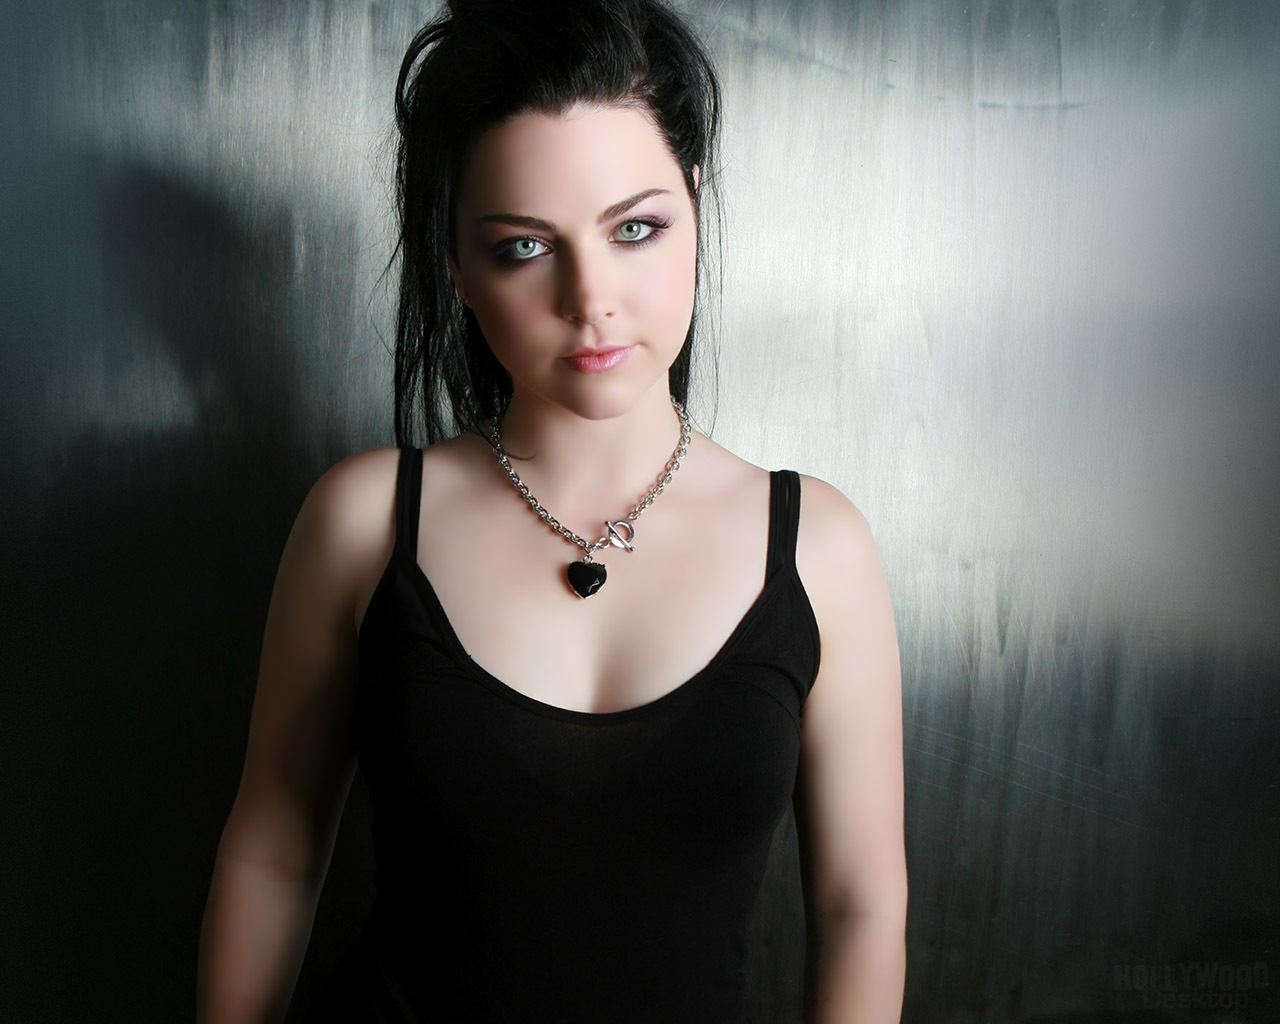 wallpaper pelho28: hd wallpaper of amy lee hot